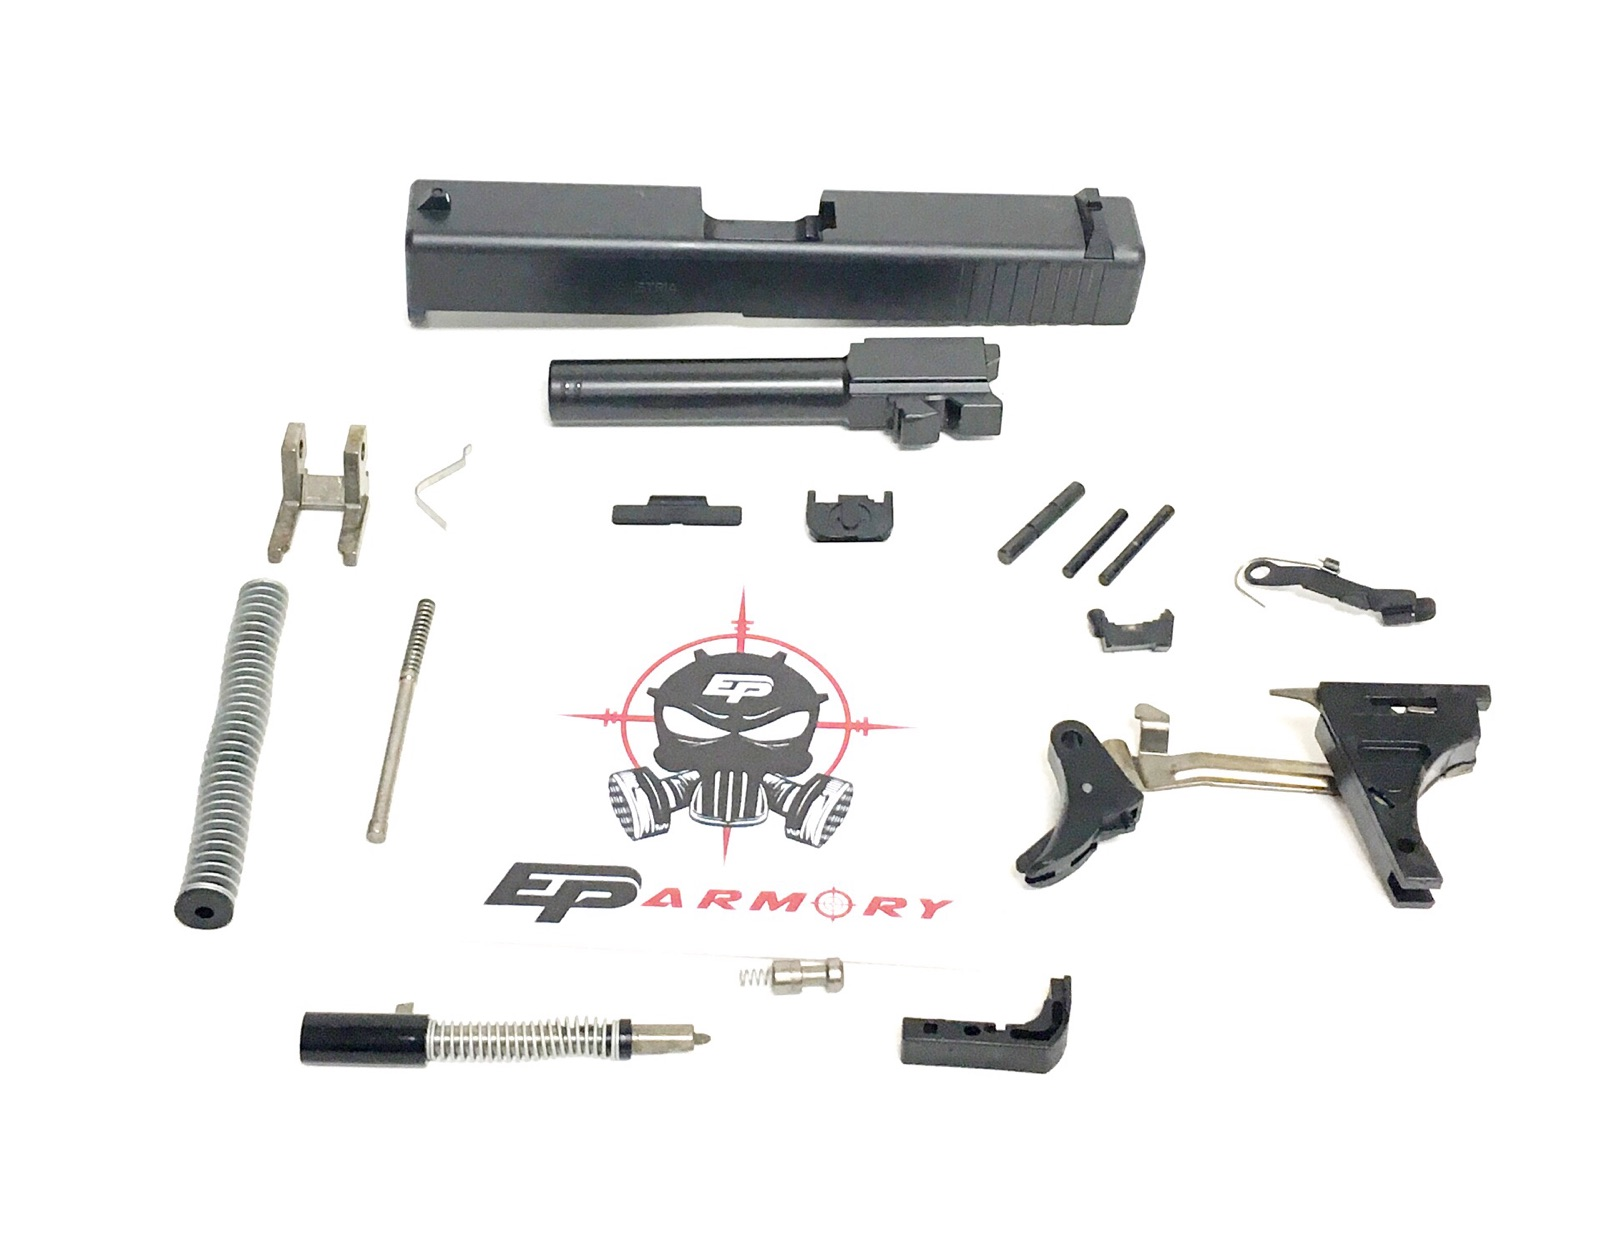 GLOCK MODEL 22 BUILD KIT / E P ARMORY